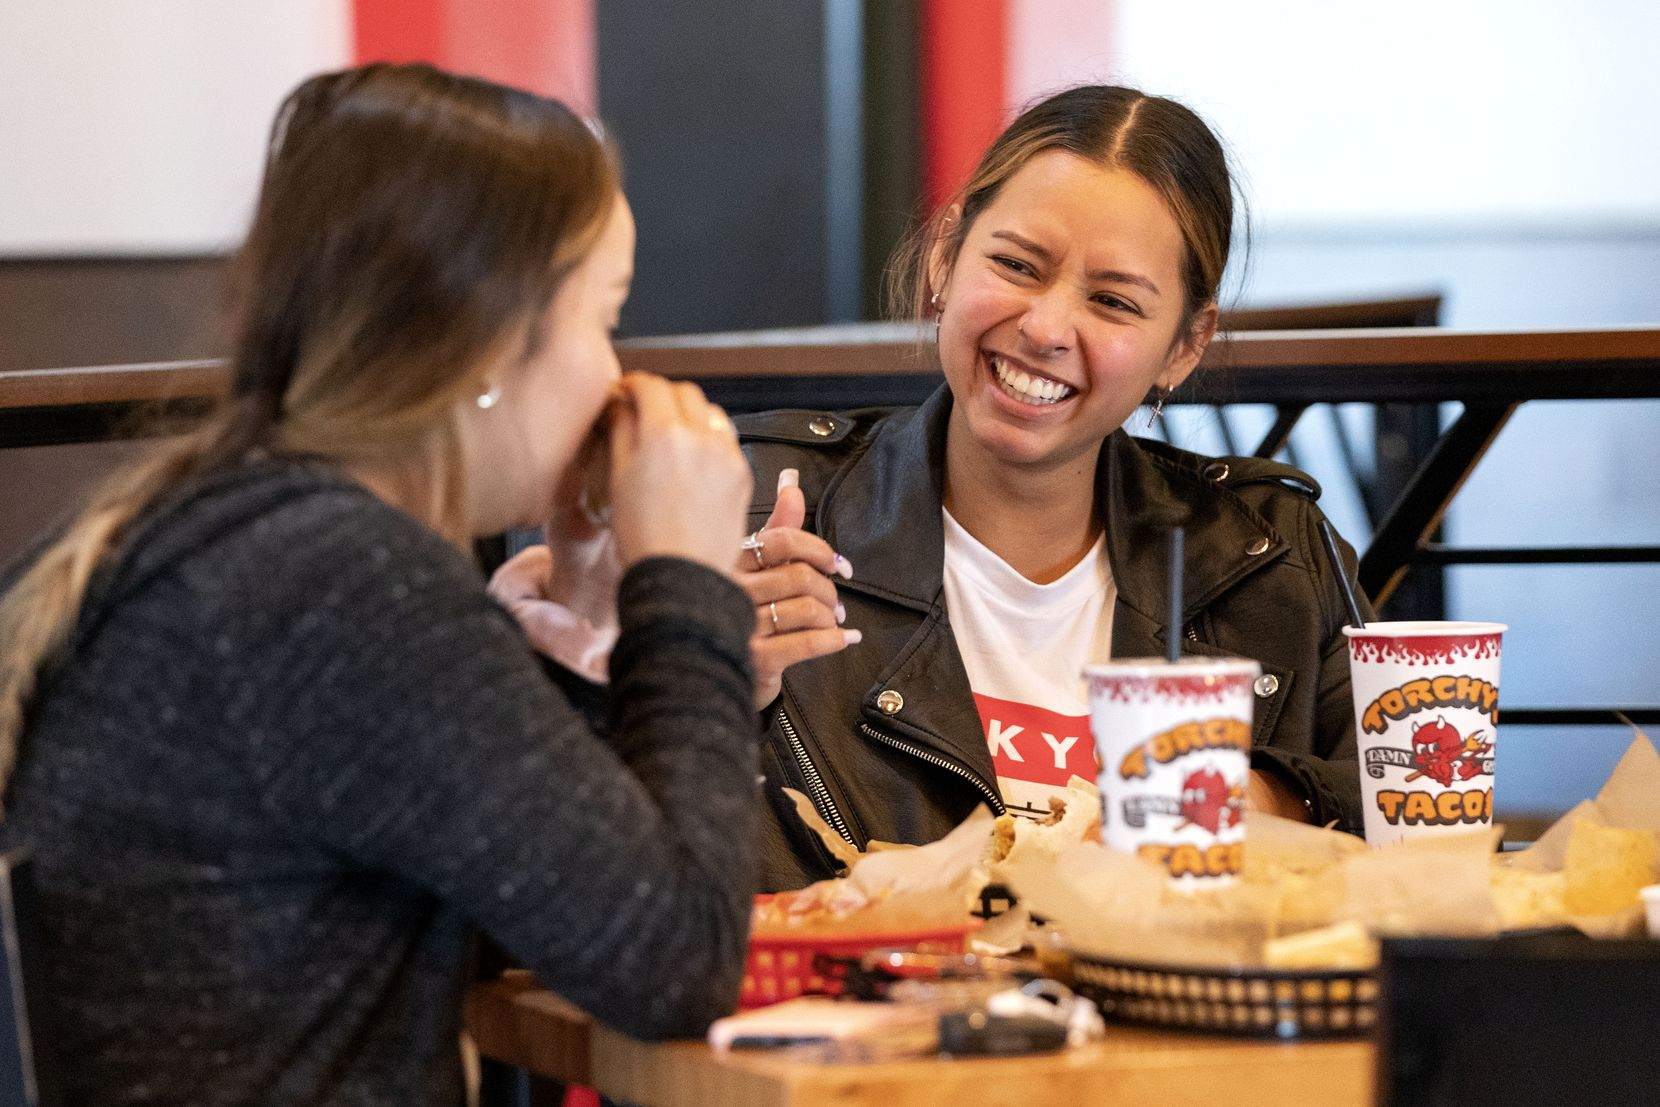 Jessica Molina (right) laughs with her sister Marisa Molina as they share a meal at Torchy's Tacos in Irving.